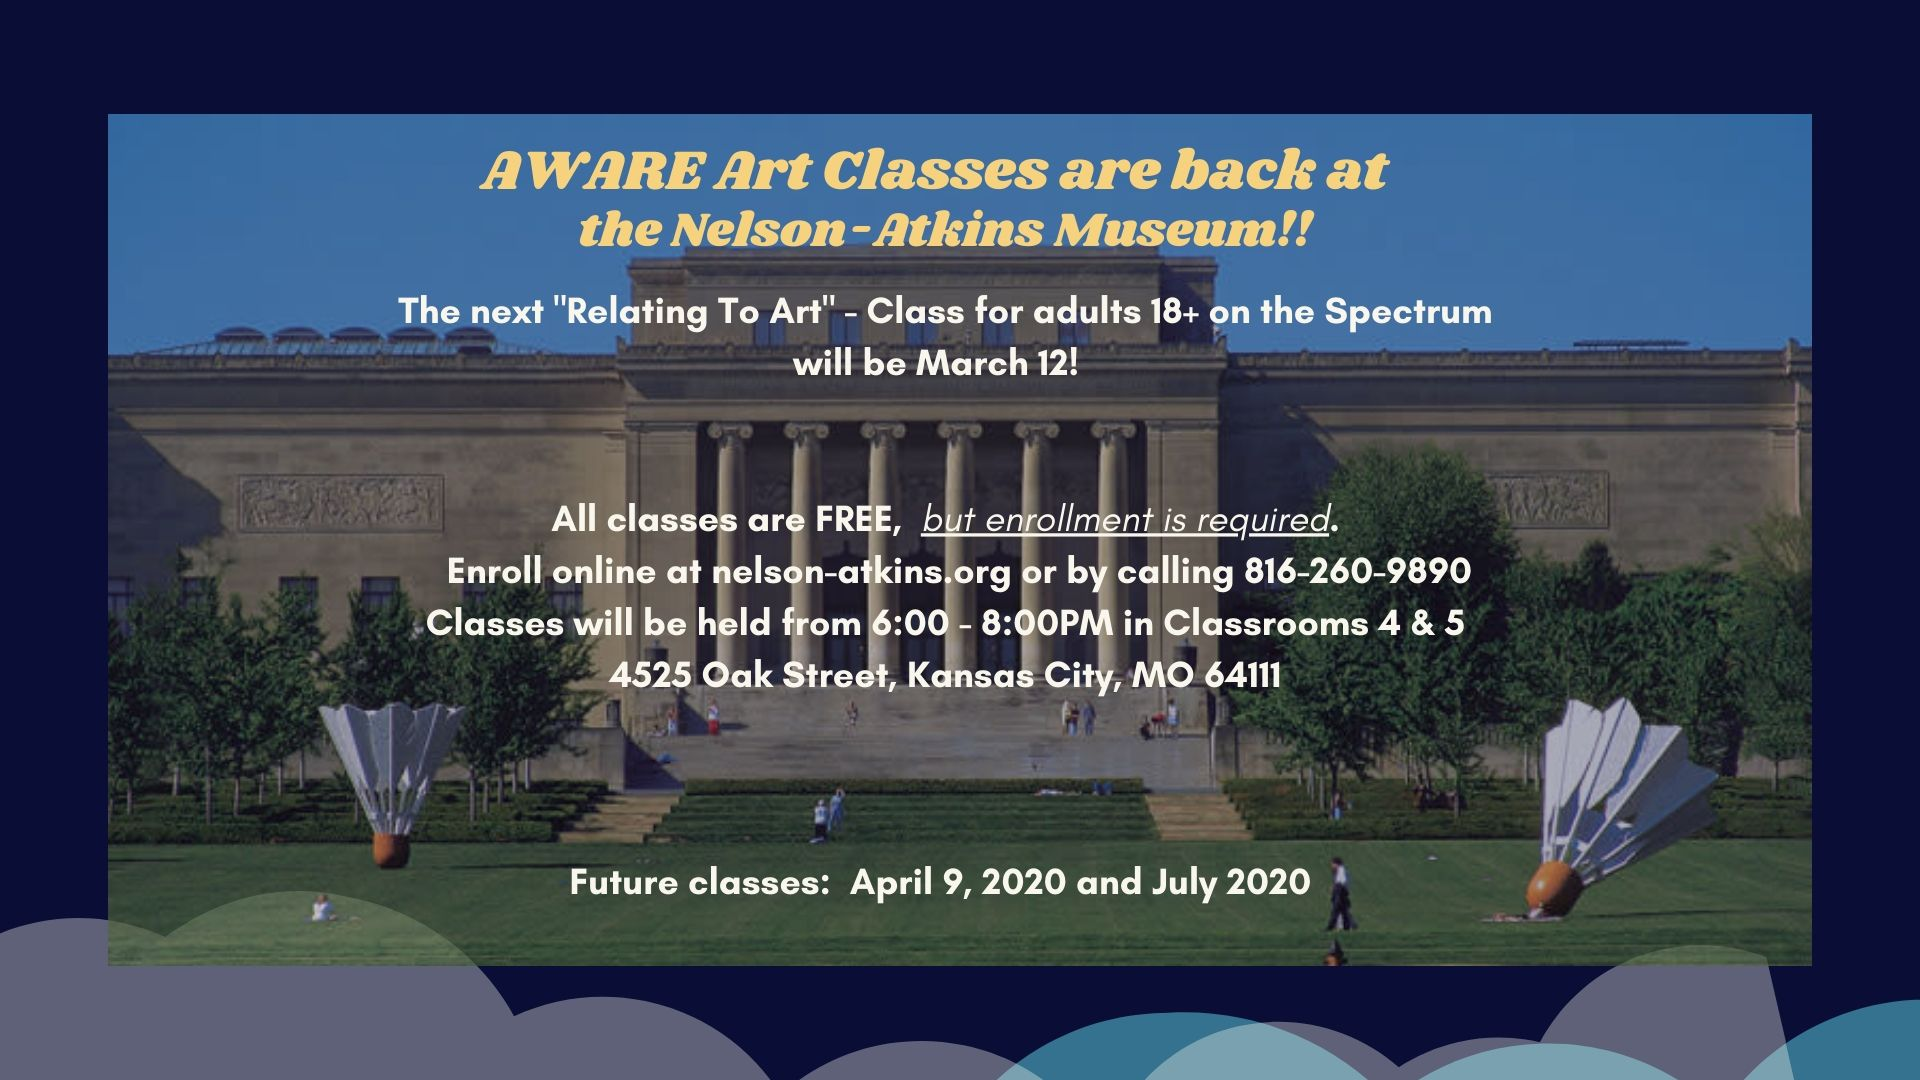 AWARE-MAR2020-Art-Classes-at-the-Nelson.jpg